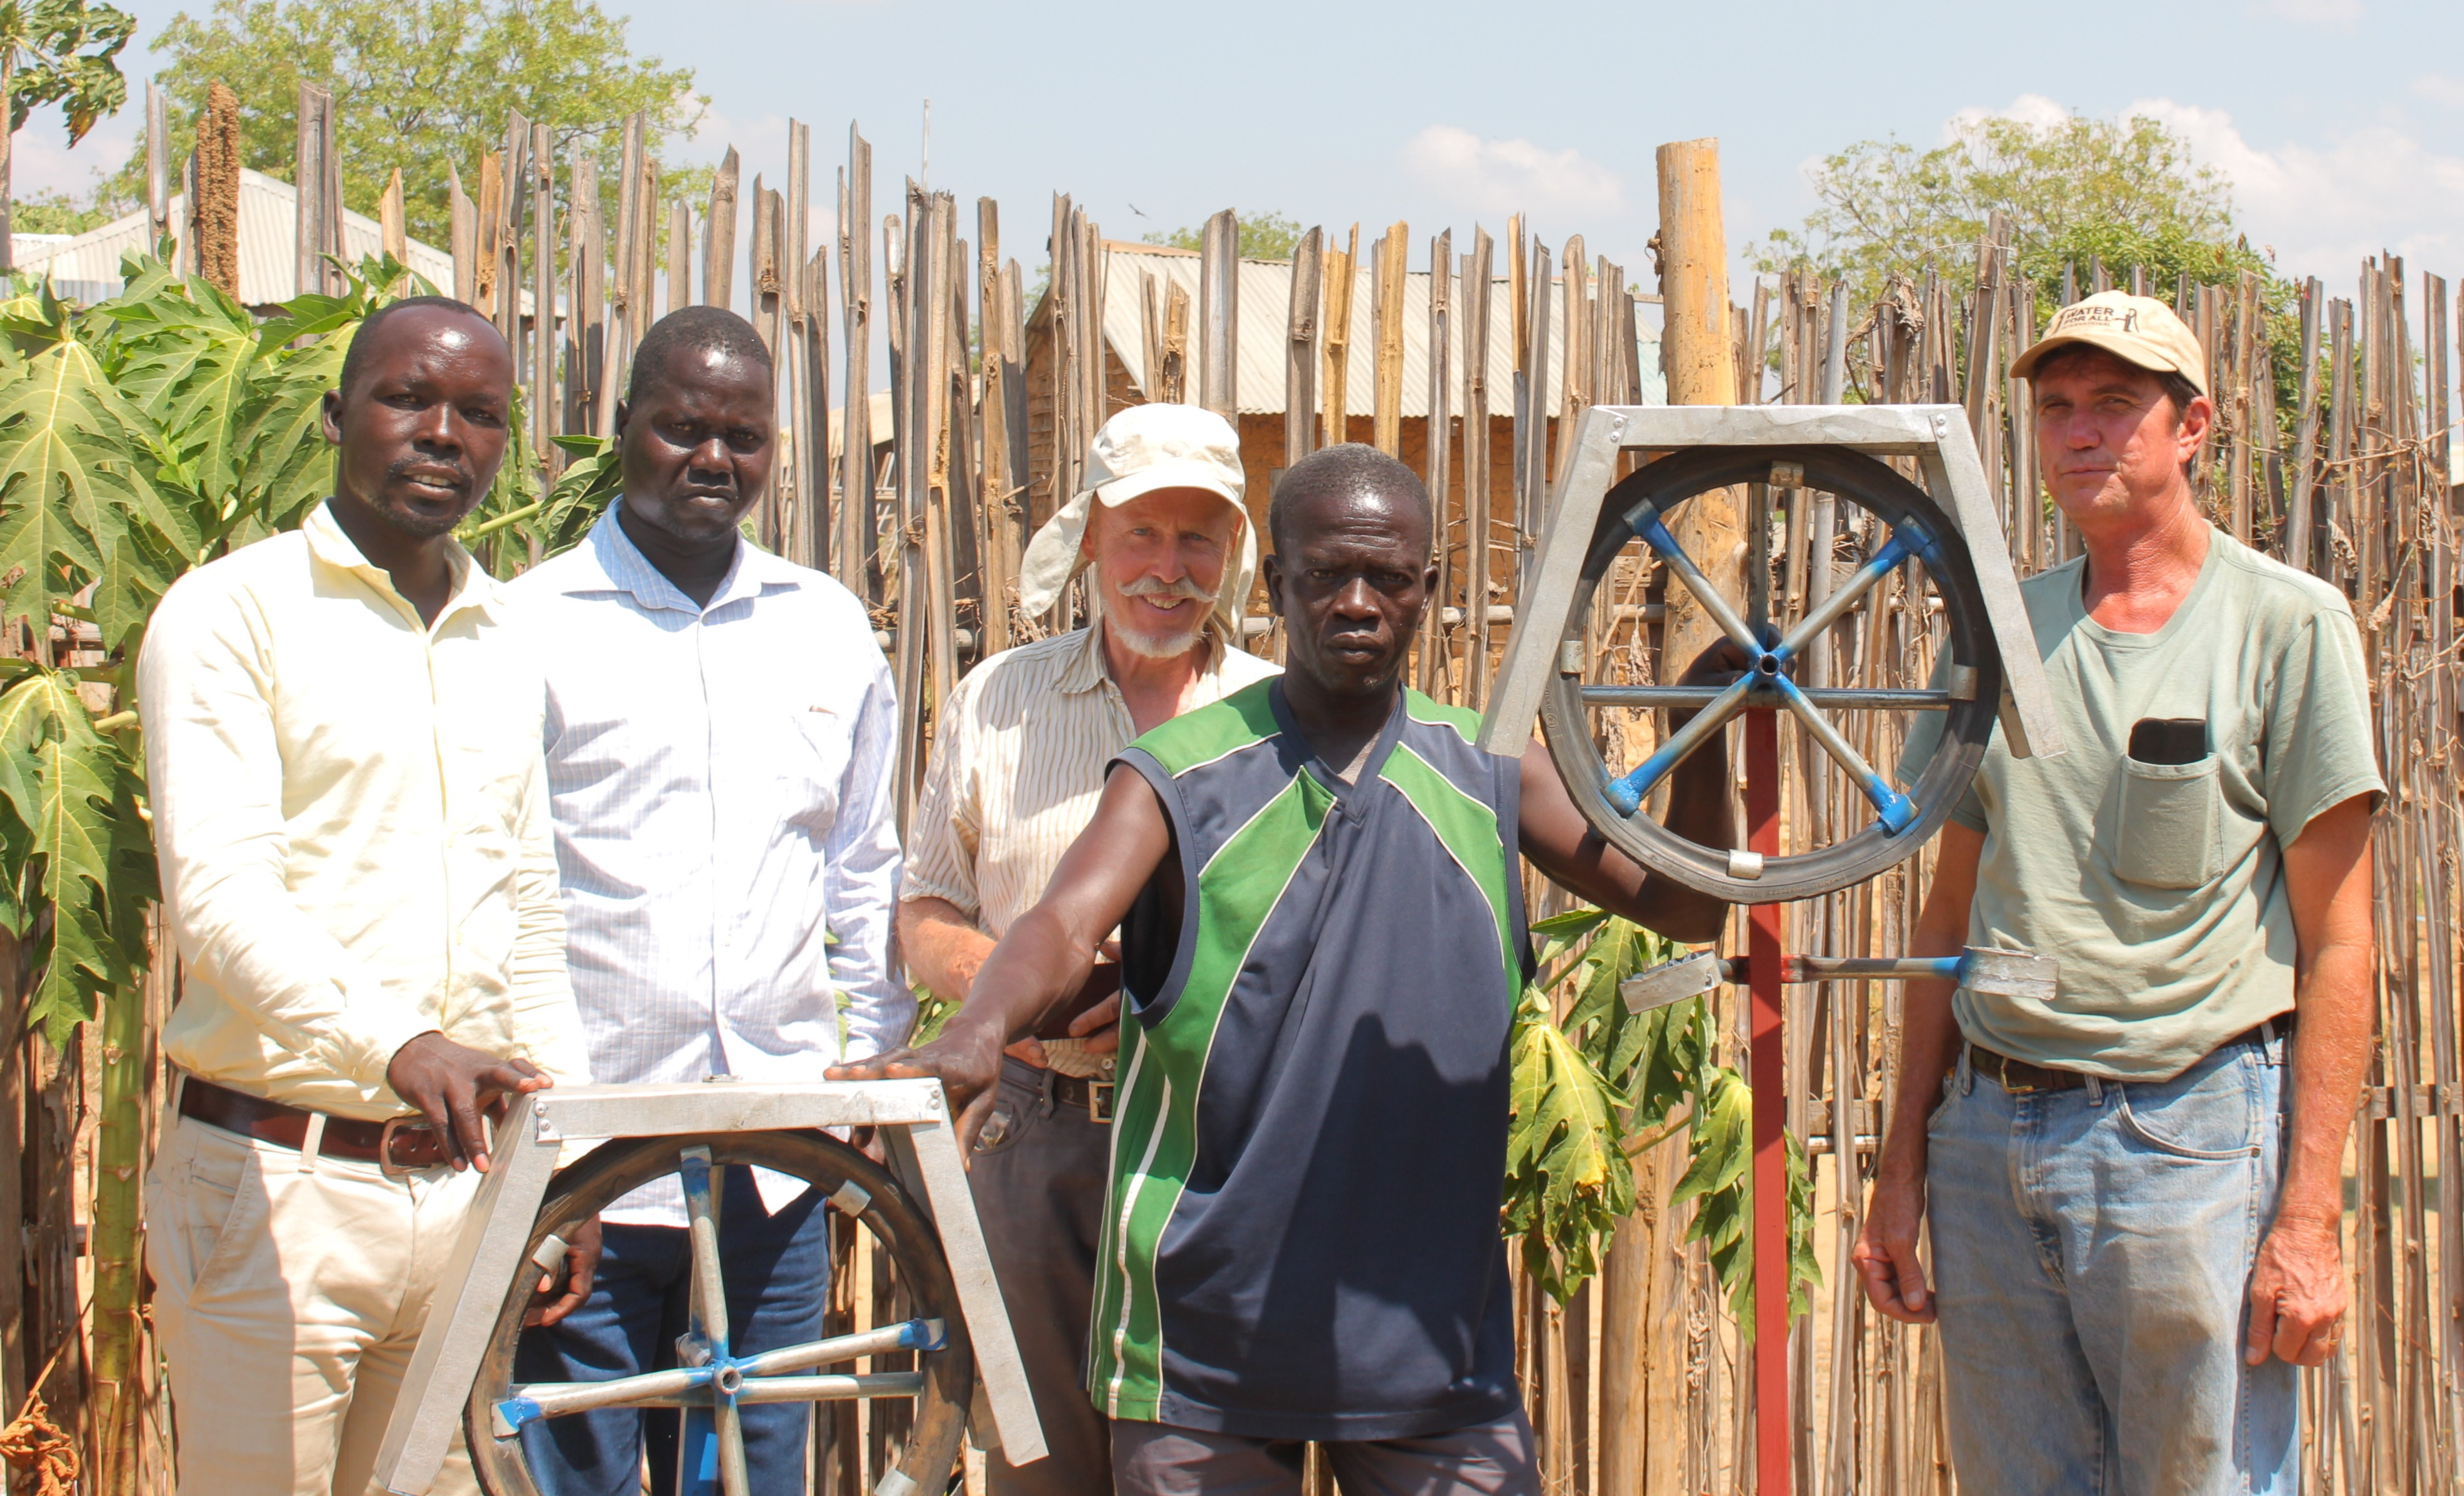 Jay Alual, Othow Okoti, Henk Holtslag, Francis Duku and Jim McGill (from left) upon completion of training in 2017.